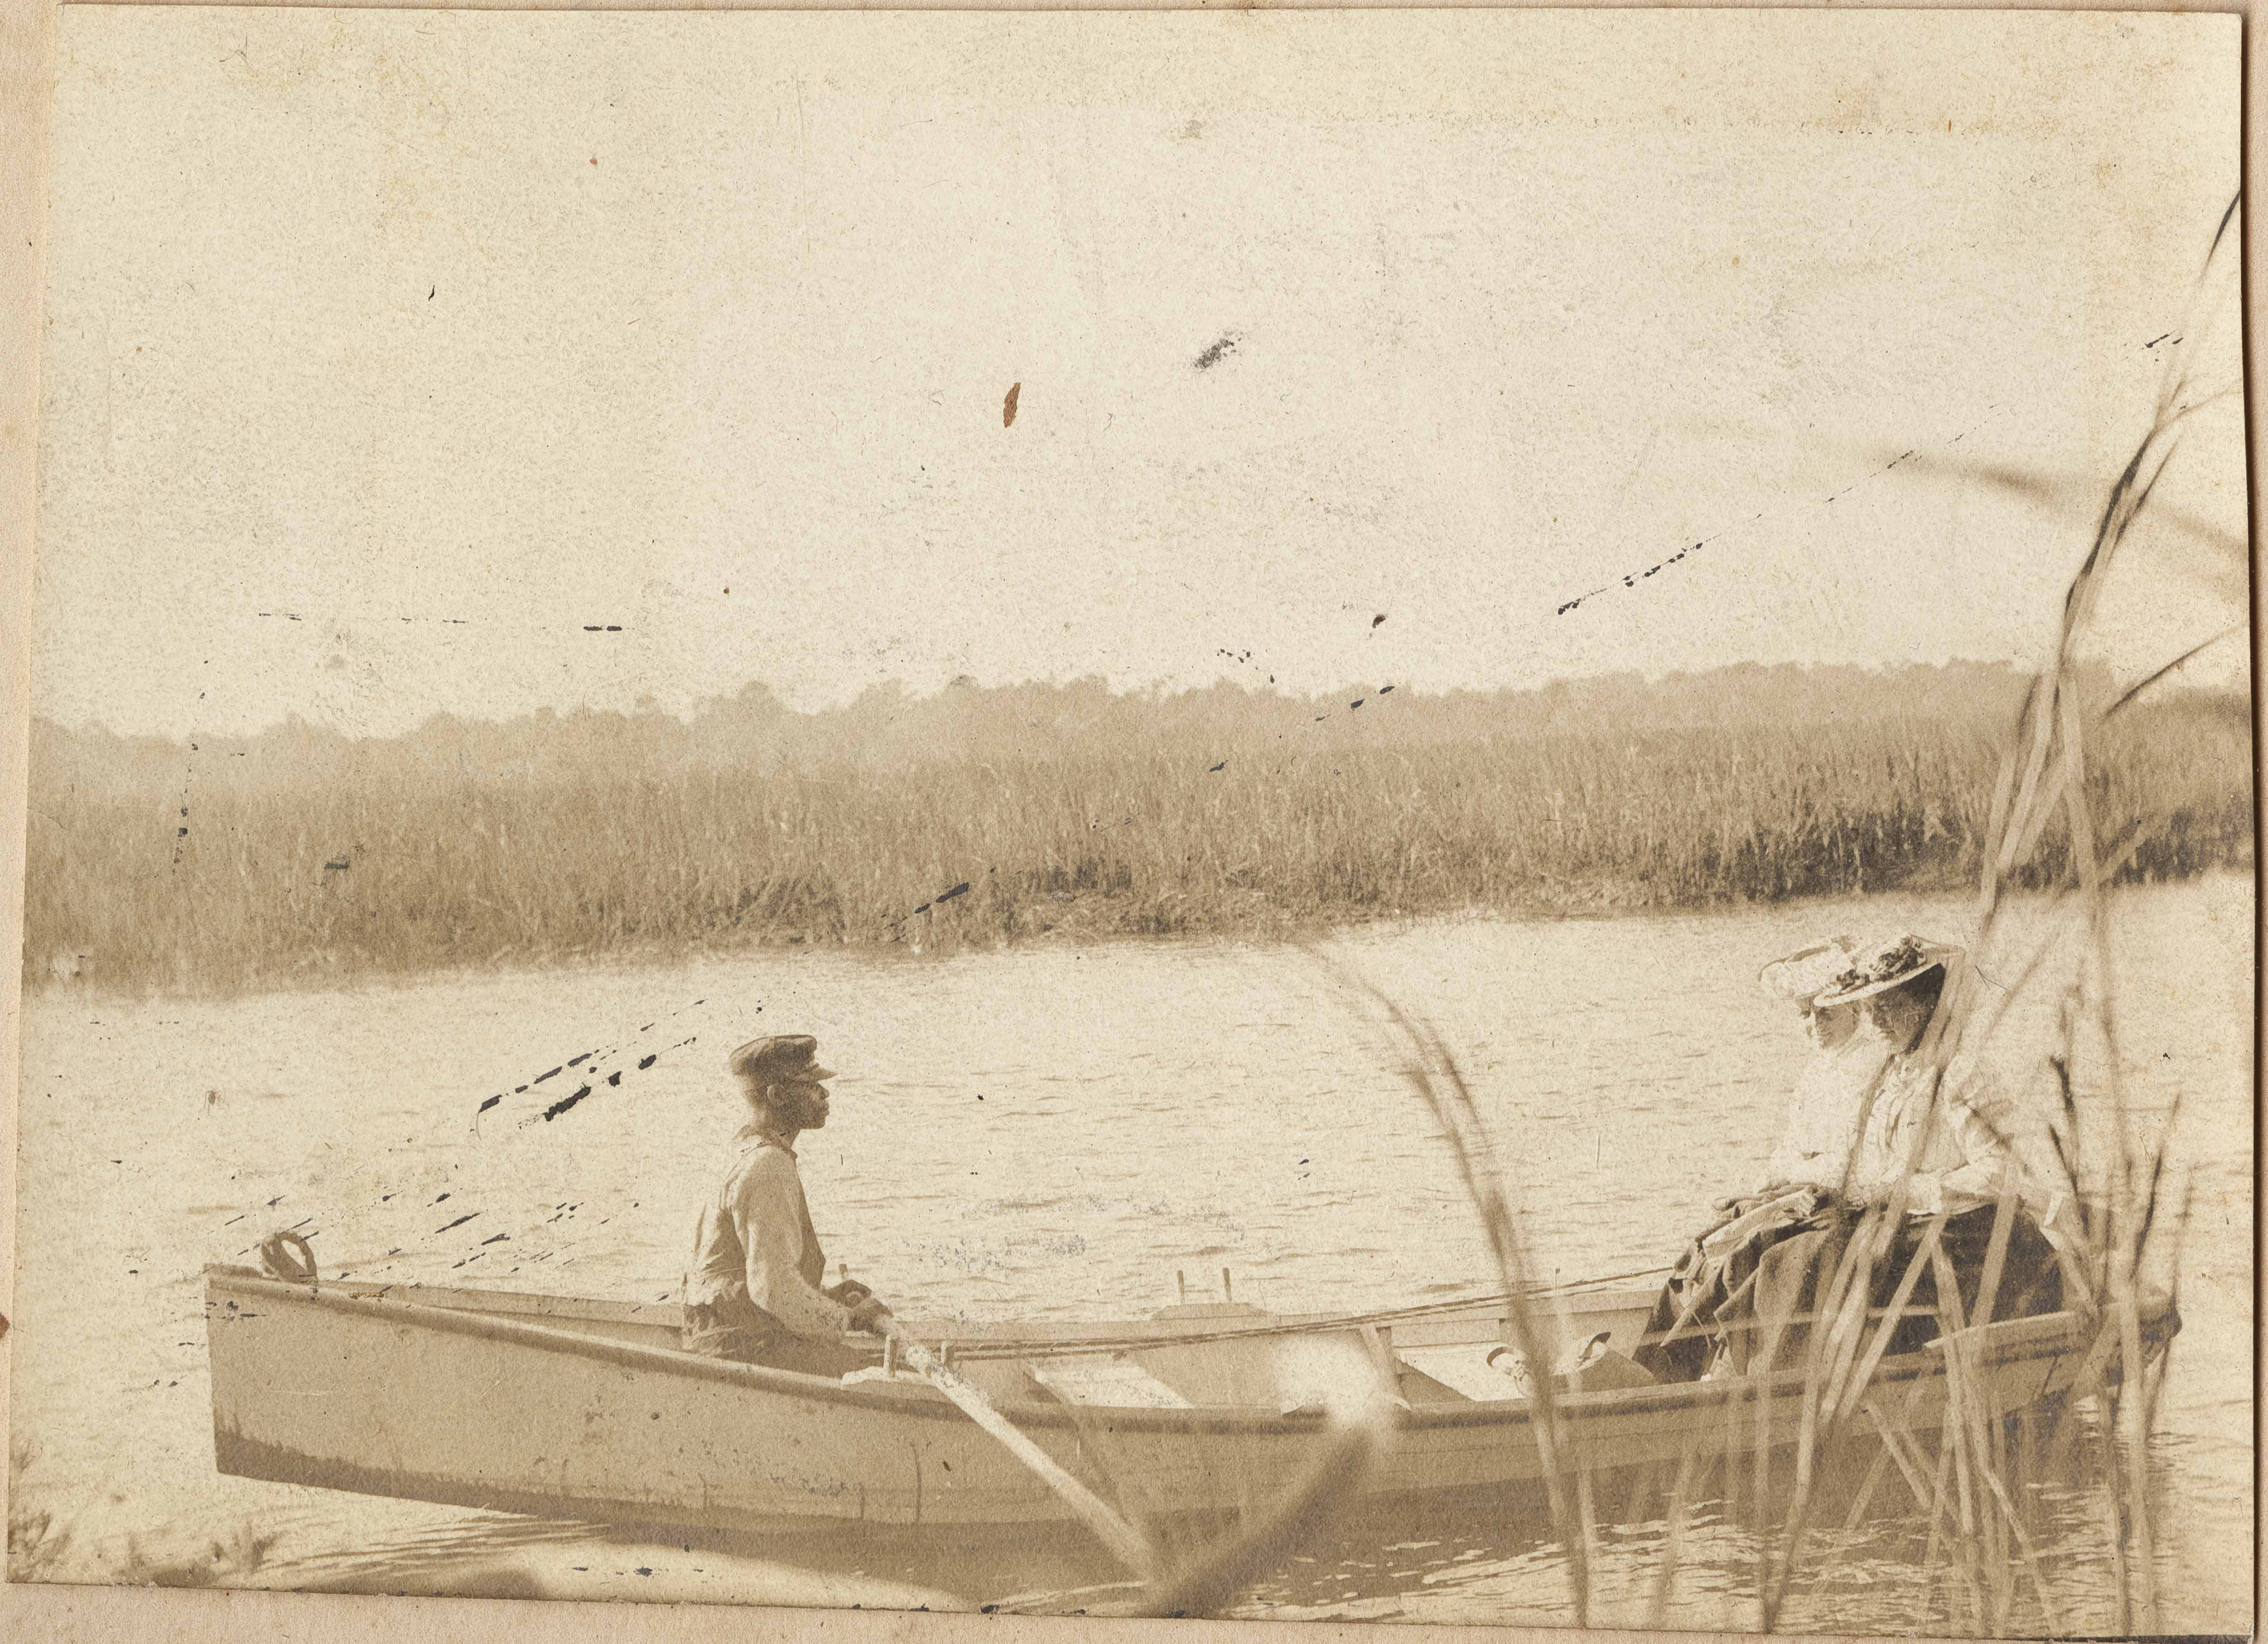 Man rowing woman in boat on the river